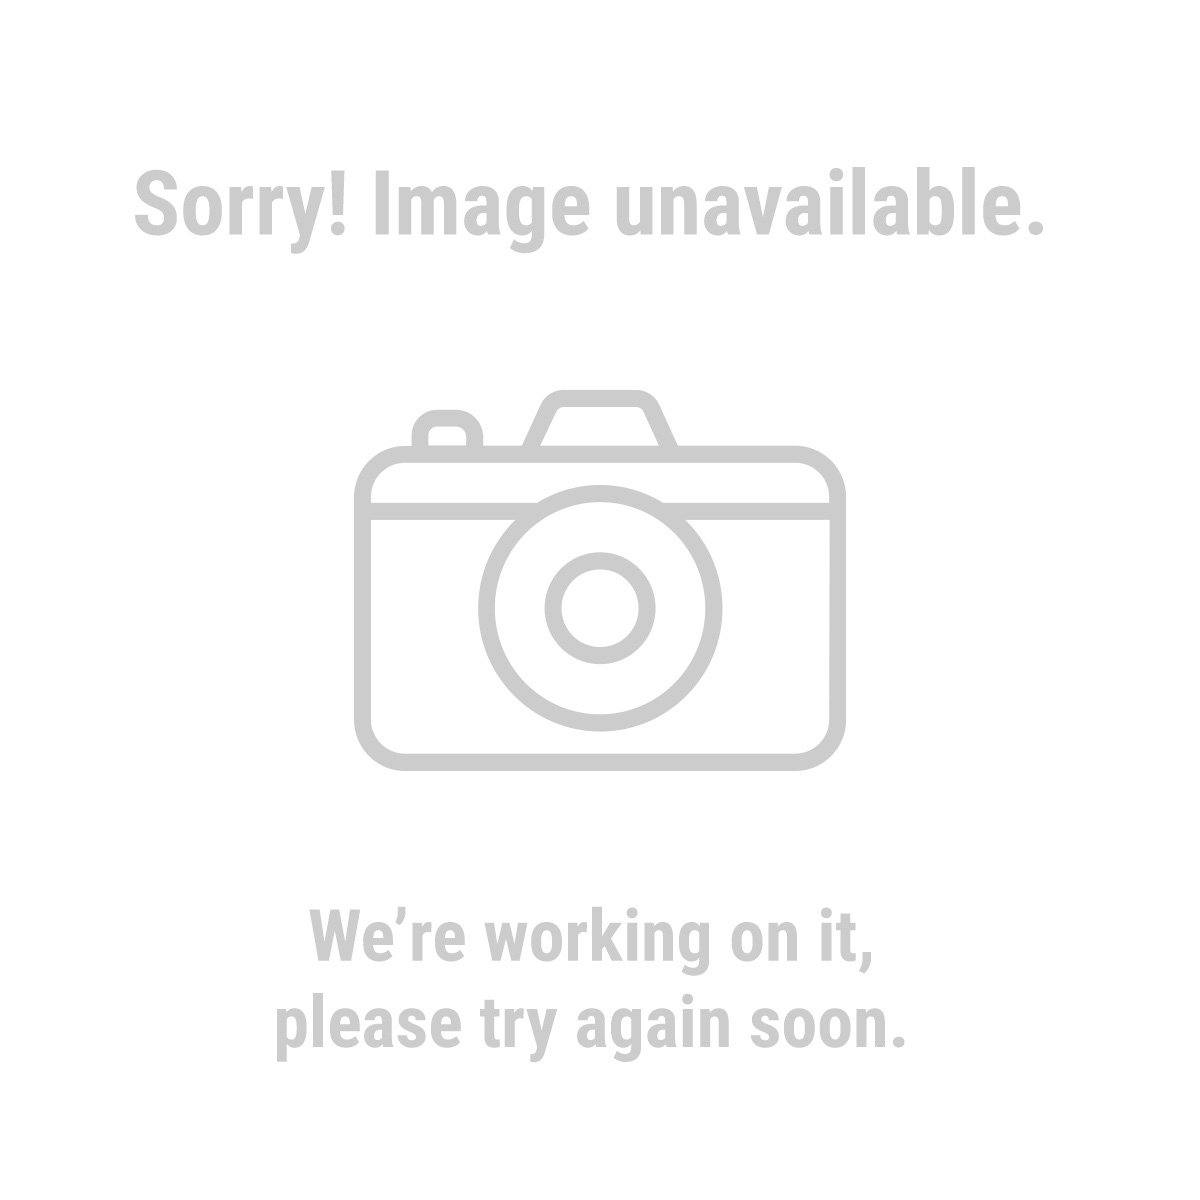 HFT 62532 27 LED Portable Worklight/Flashlight